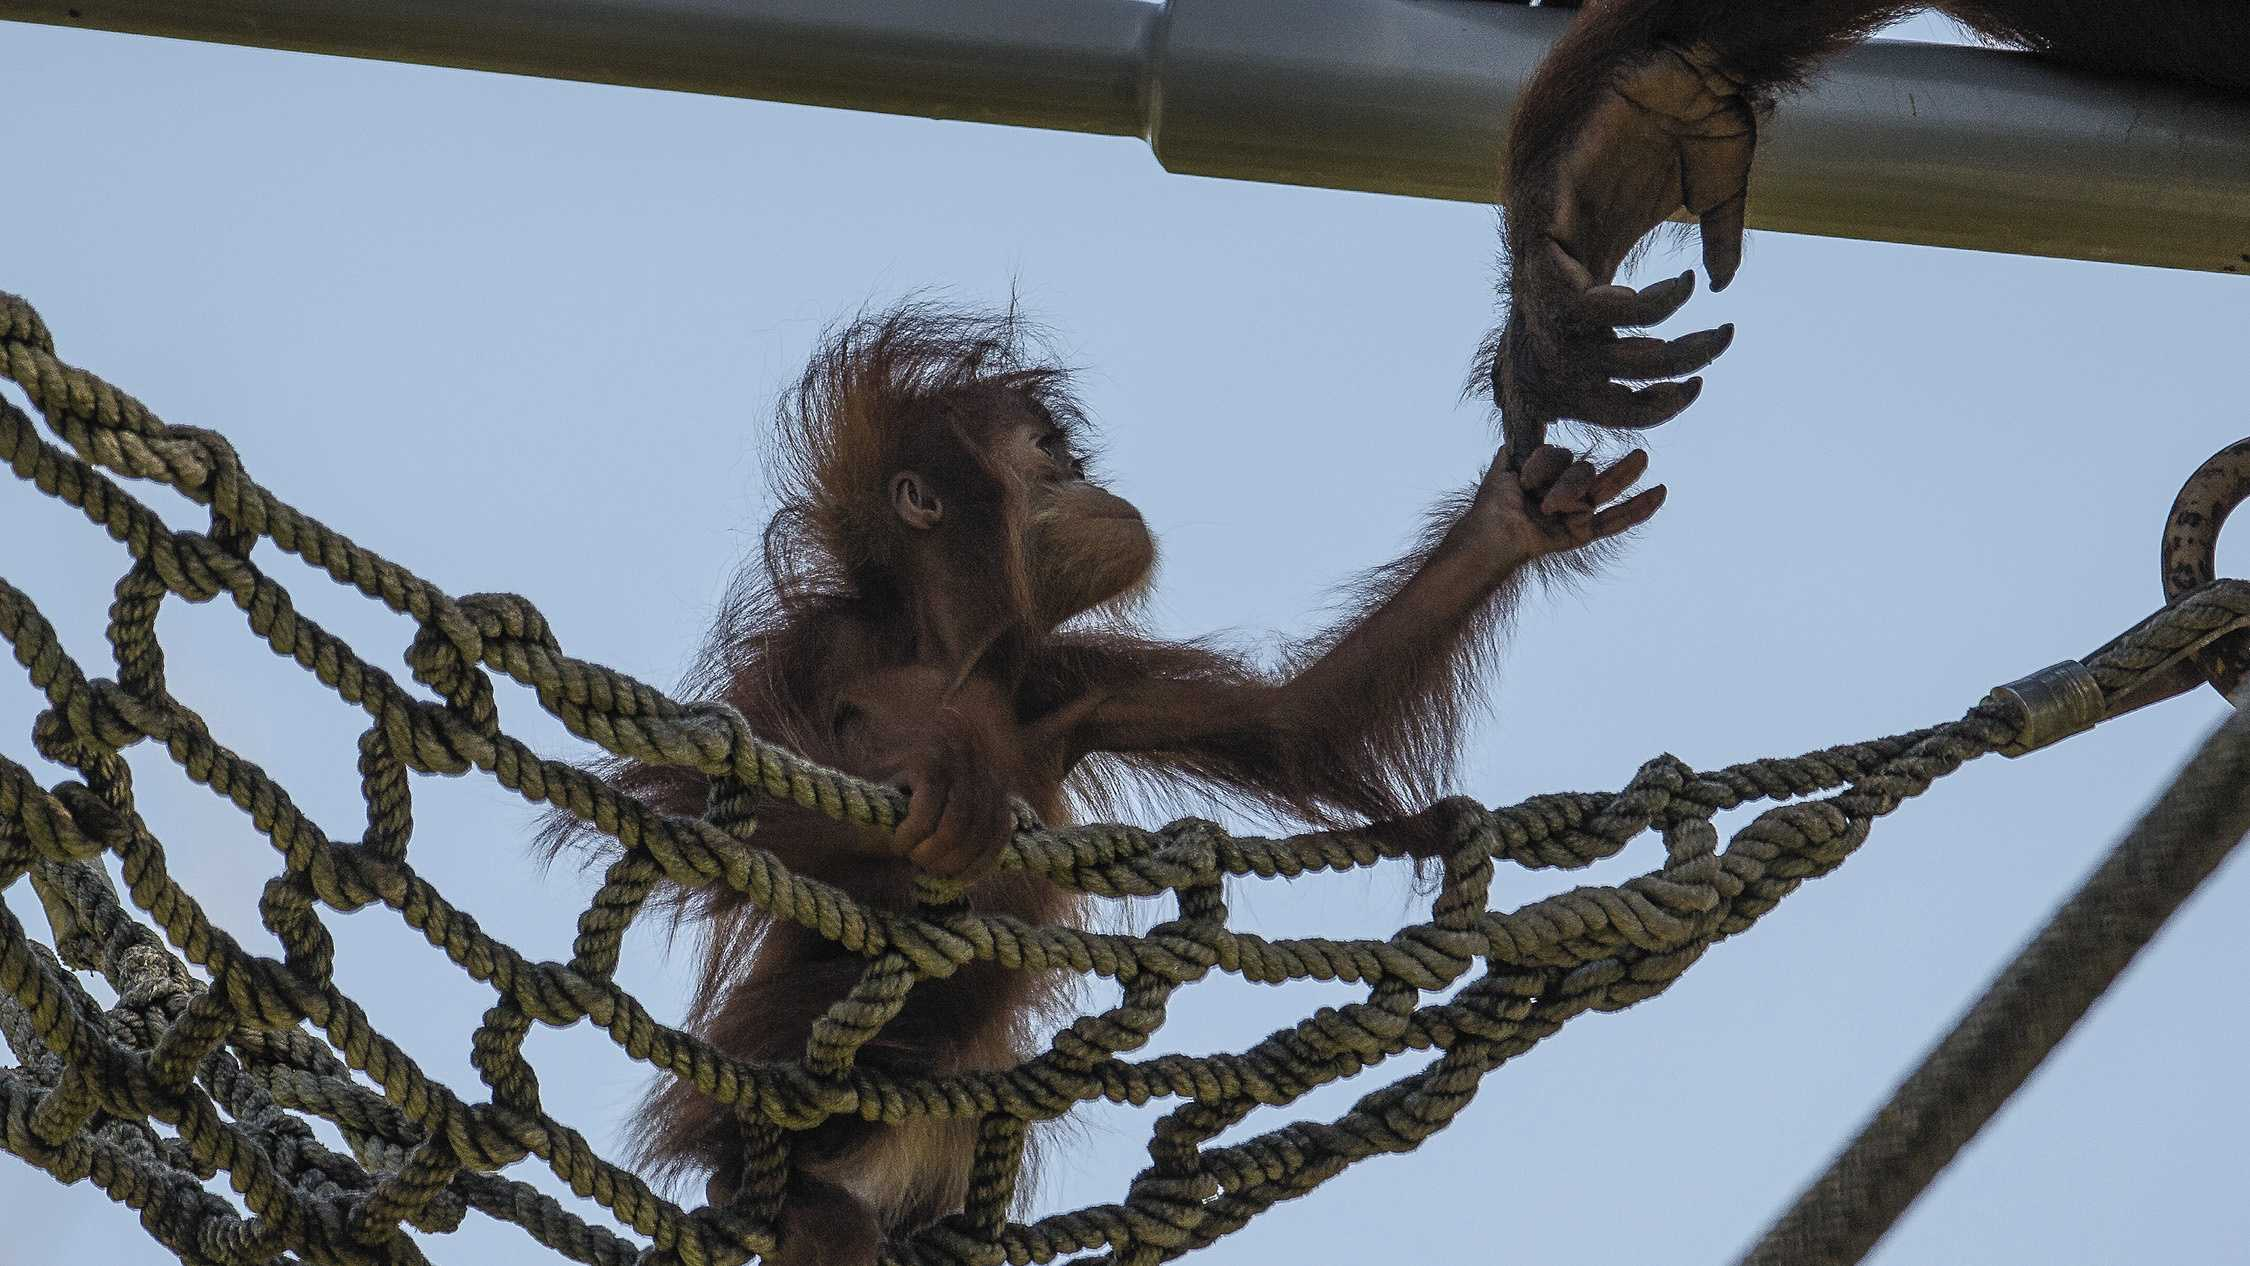 In this photo provided by the San Diego Zoo, an orangutan youngster reaches up to her mother as she explores a net climbing area at the San Diego Zoo in San Diego, on Monday, July 7, 2014. At just a little over 8 months old the playful youngster, named Aisha, is beginning to explore her habitat, never venturing more than 10 feet from her mother.